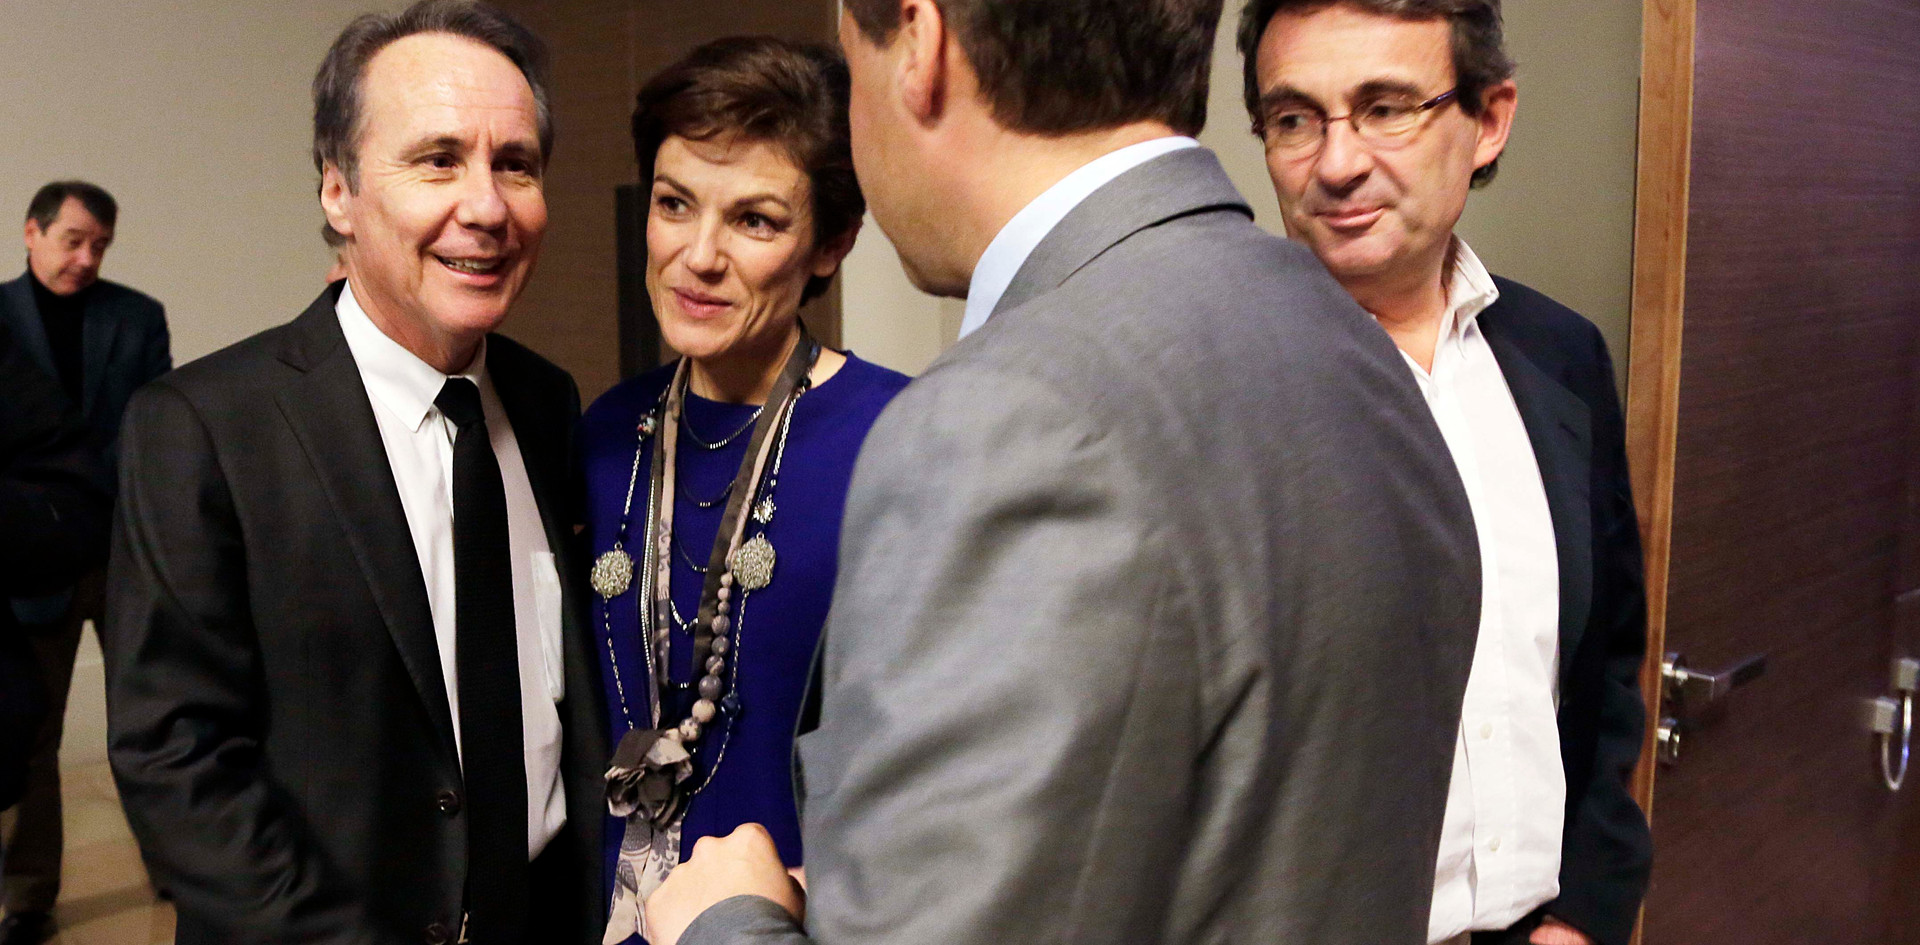 Dominique Paillé, Jean-Christophe Lagarde et Chantal Jouanno